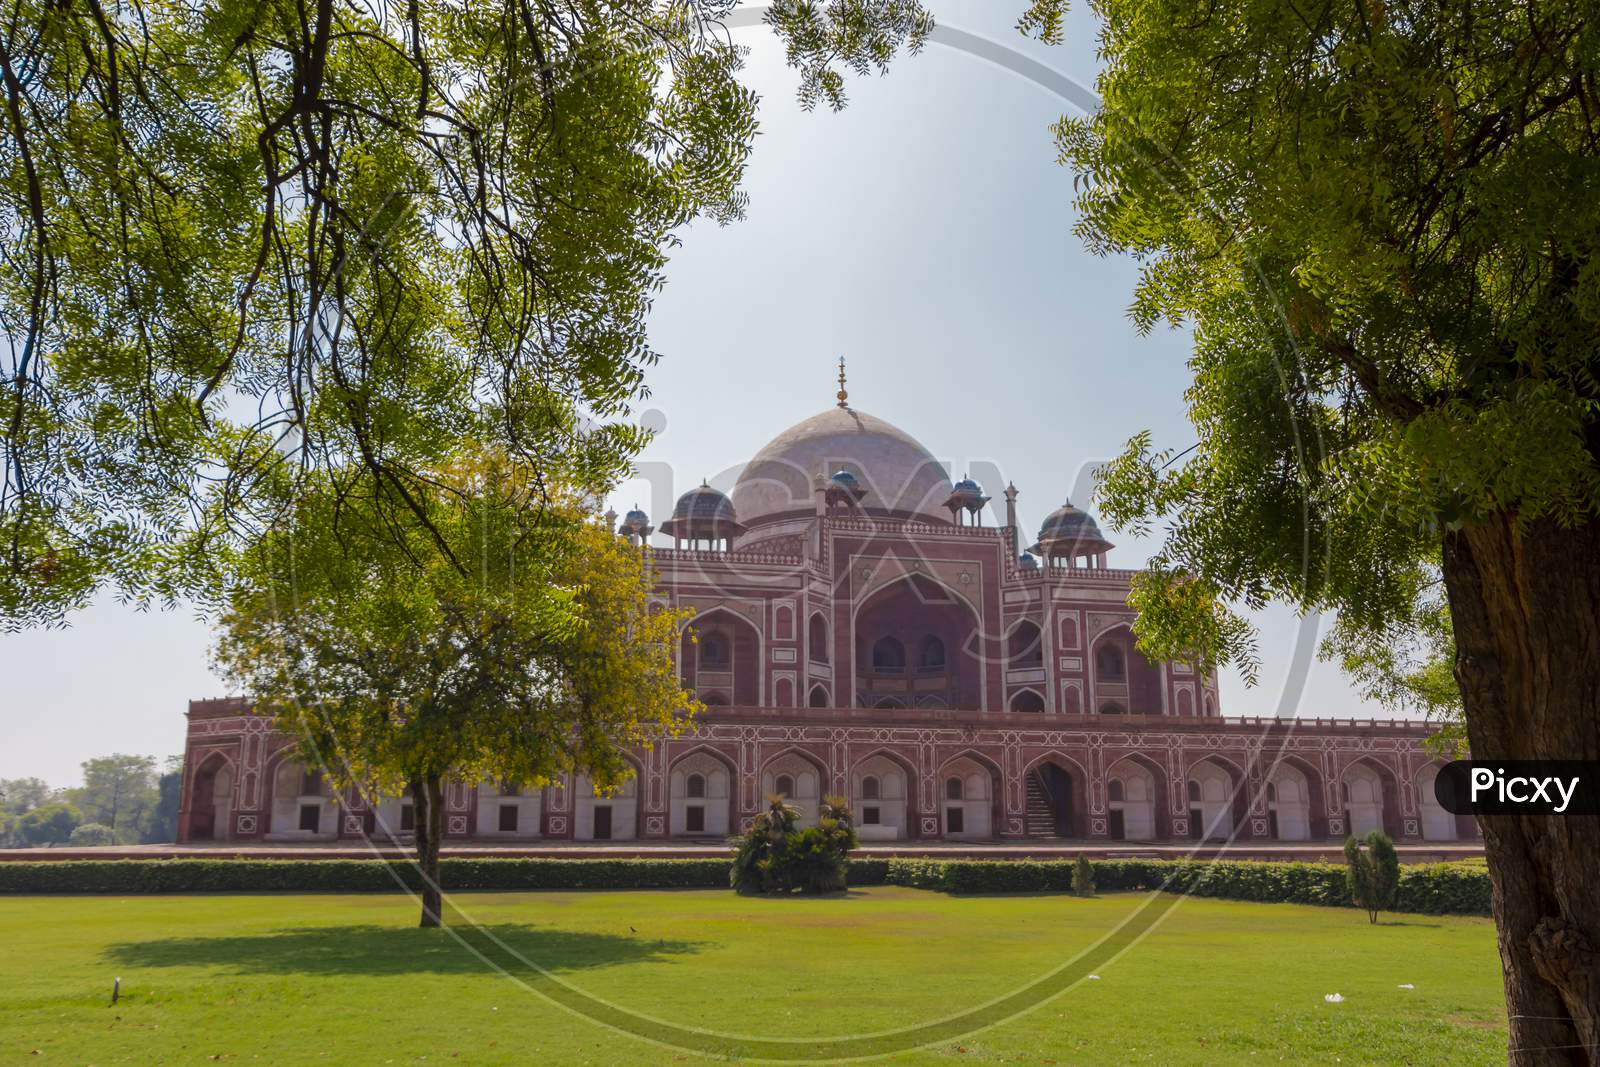 Humayun Tomb with some green tree branches